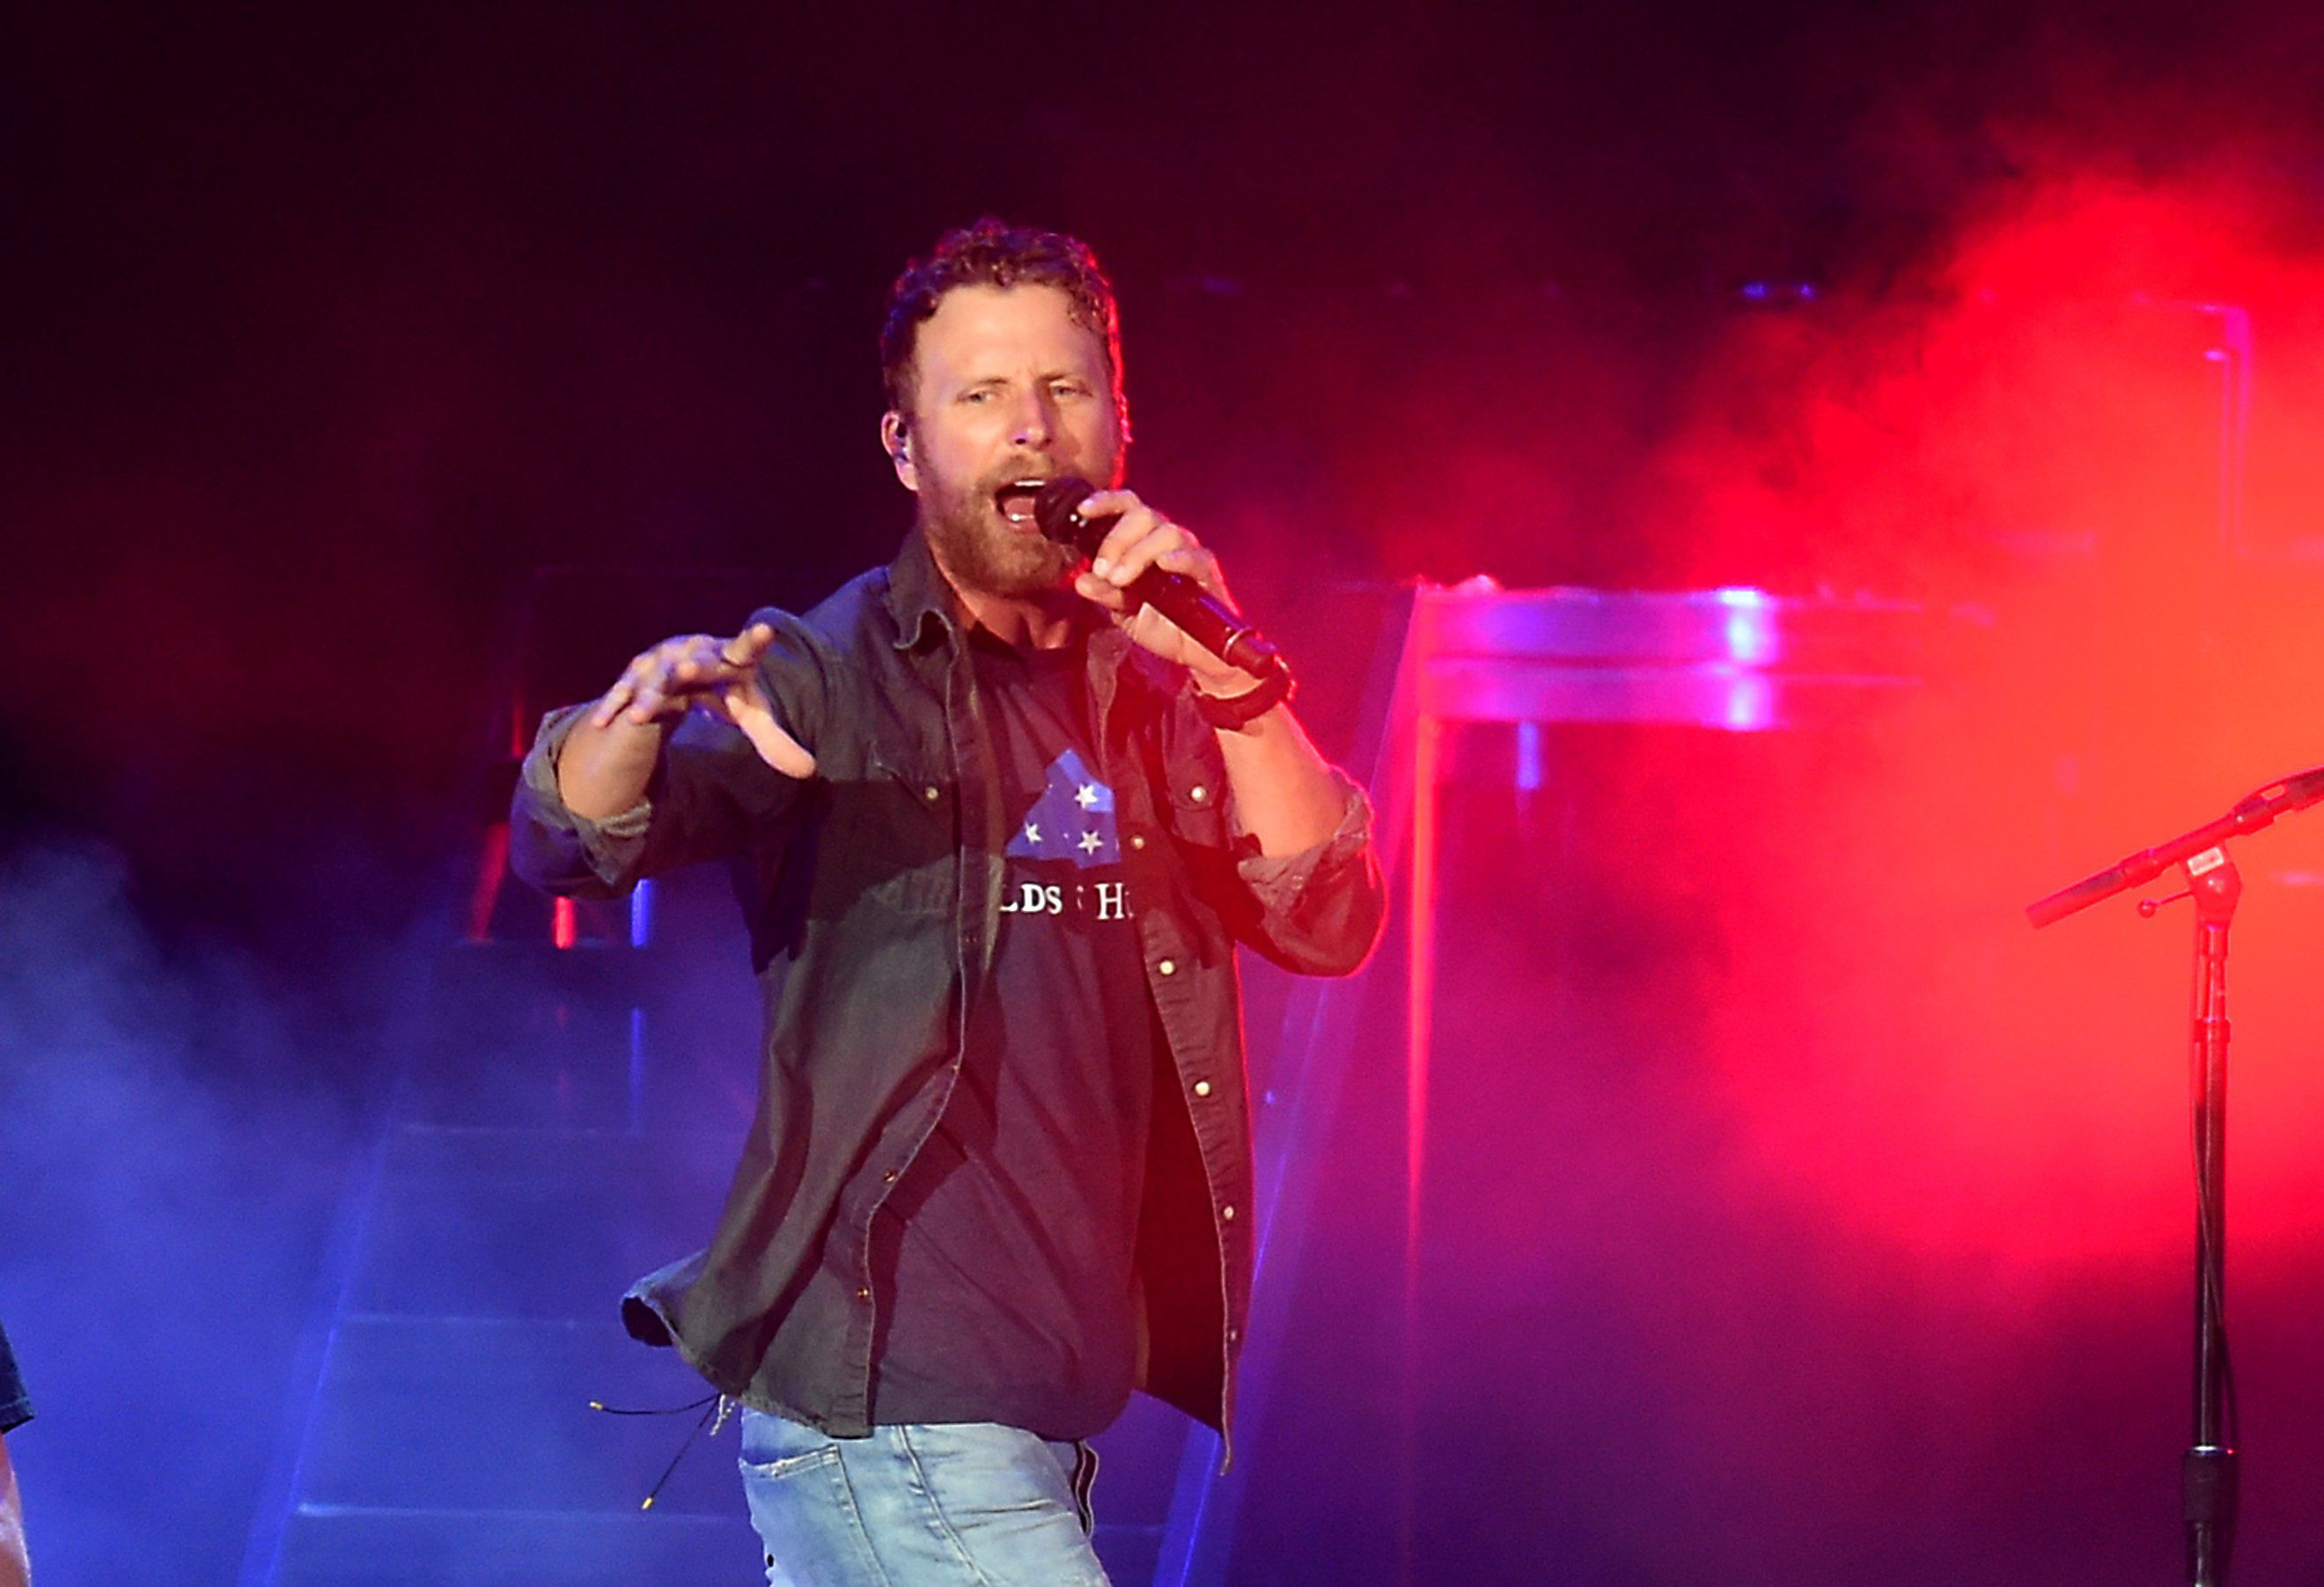 Dierks Bentley Tour 2020.Dierks Bentley To Open 2020 York Fair Pennlive Com